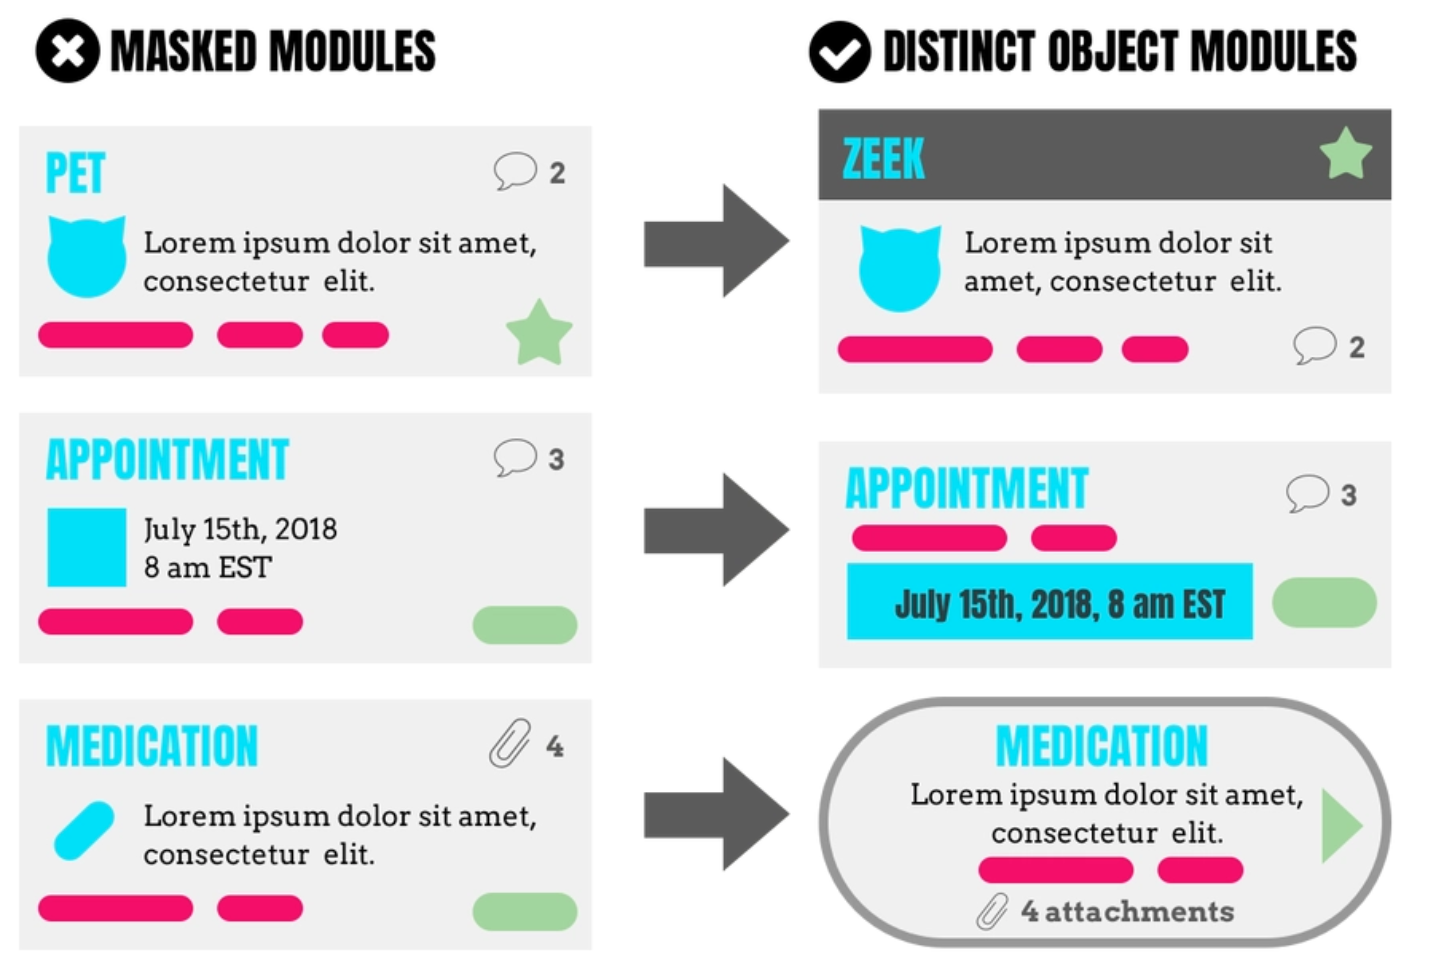 Continuing with the veterinary portal from lesson one, we have pet, appointment, and medication modules all leveraging the same basic module design. Instead, create distinct modules for distinct objects. Different things deserve different packaging!